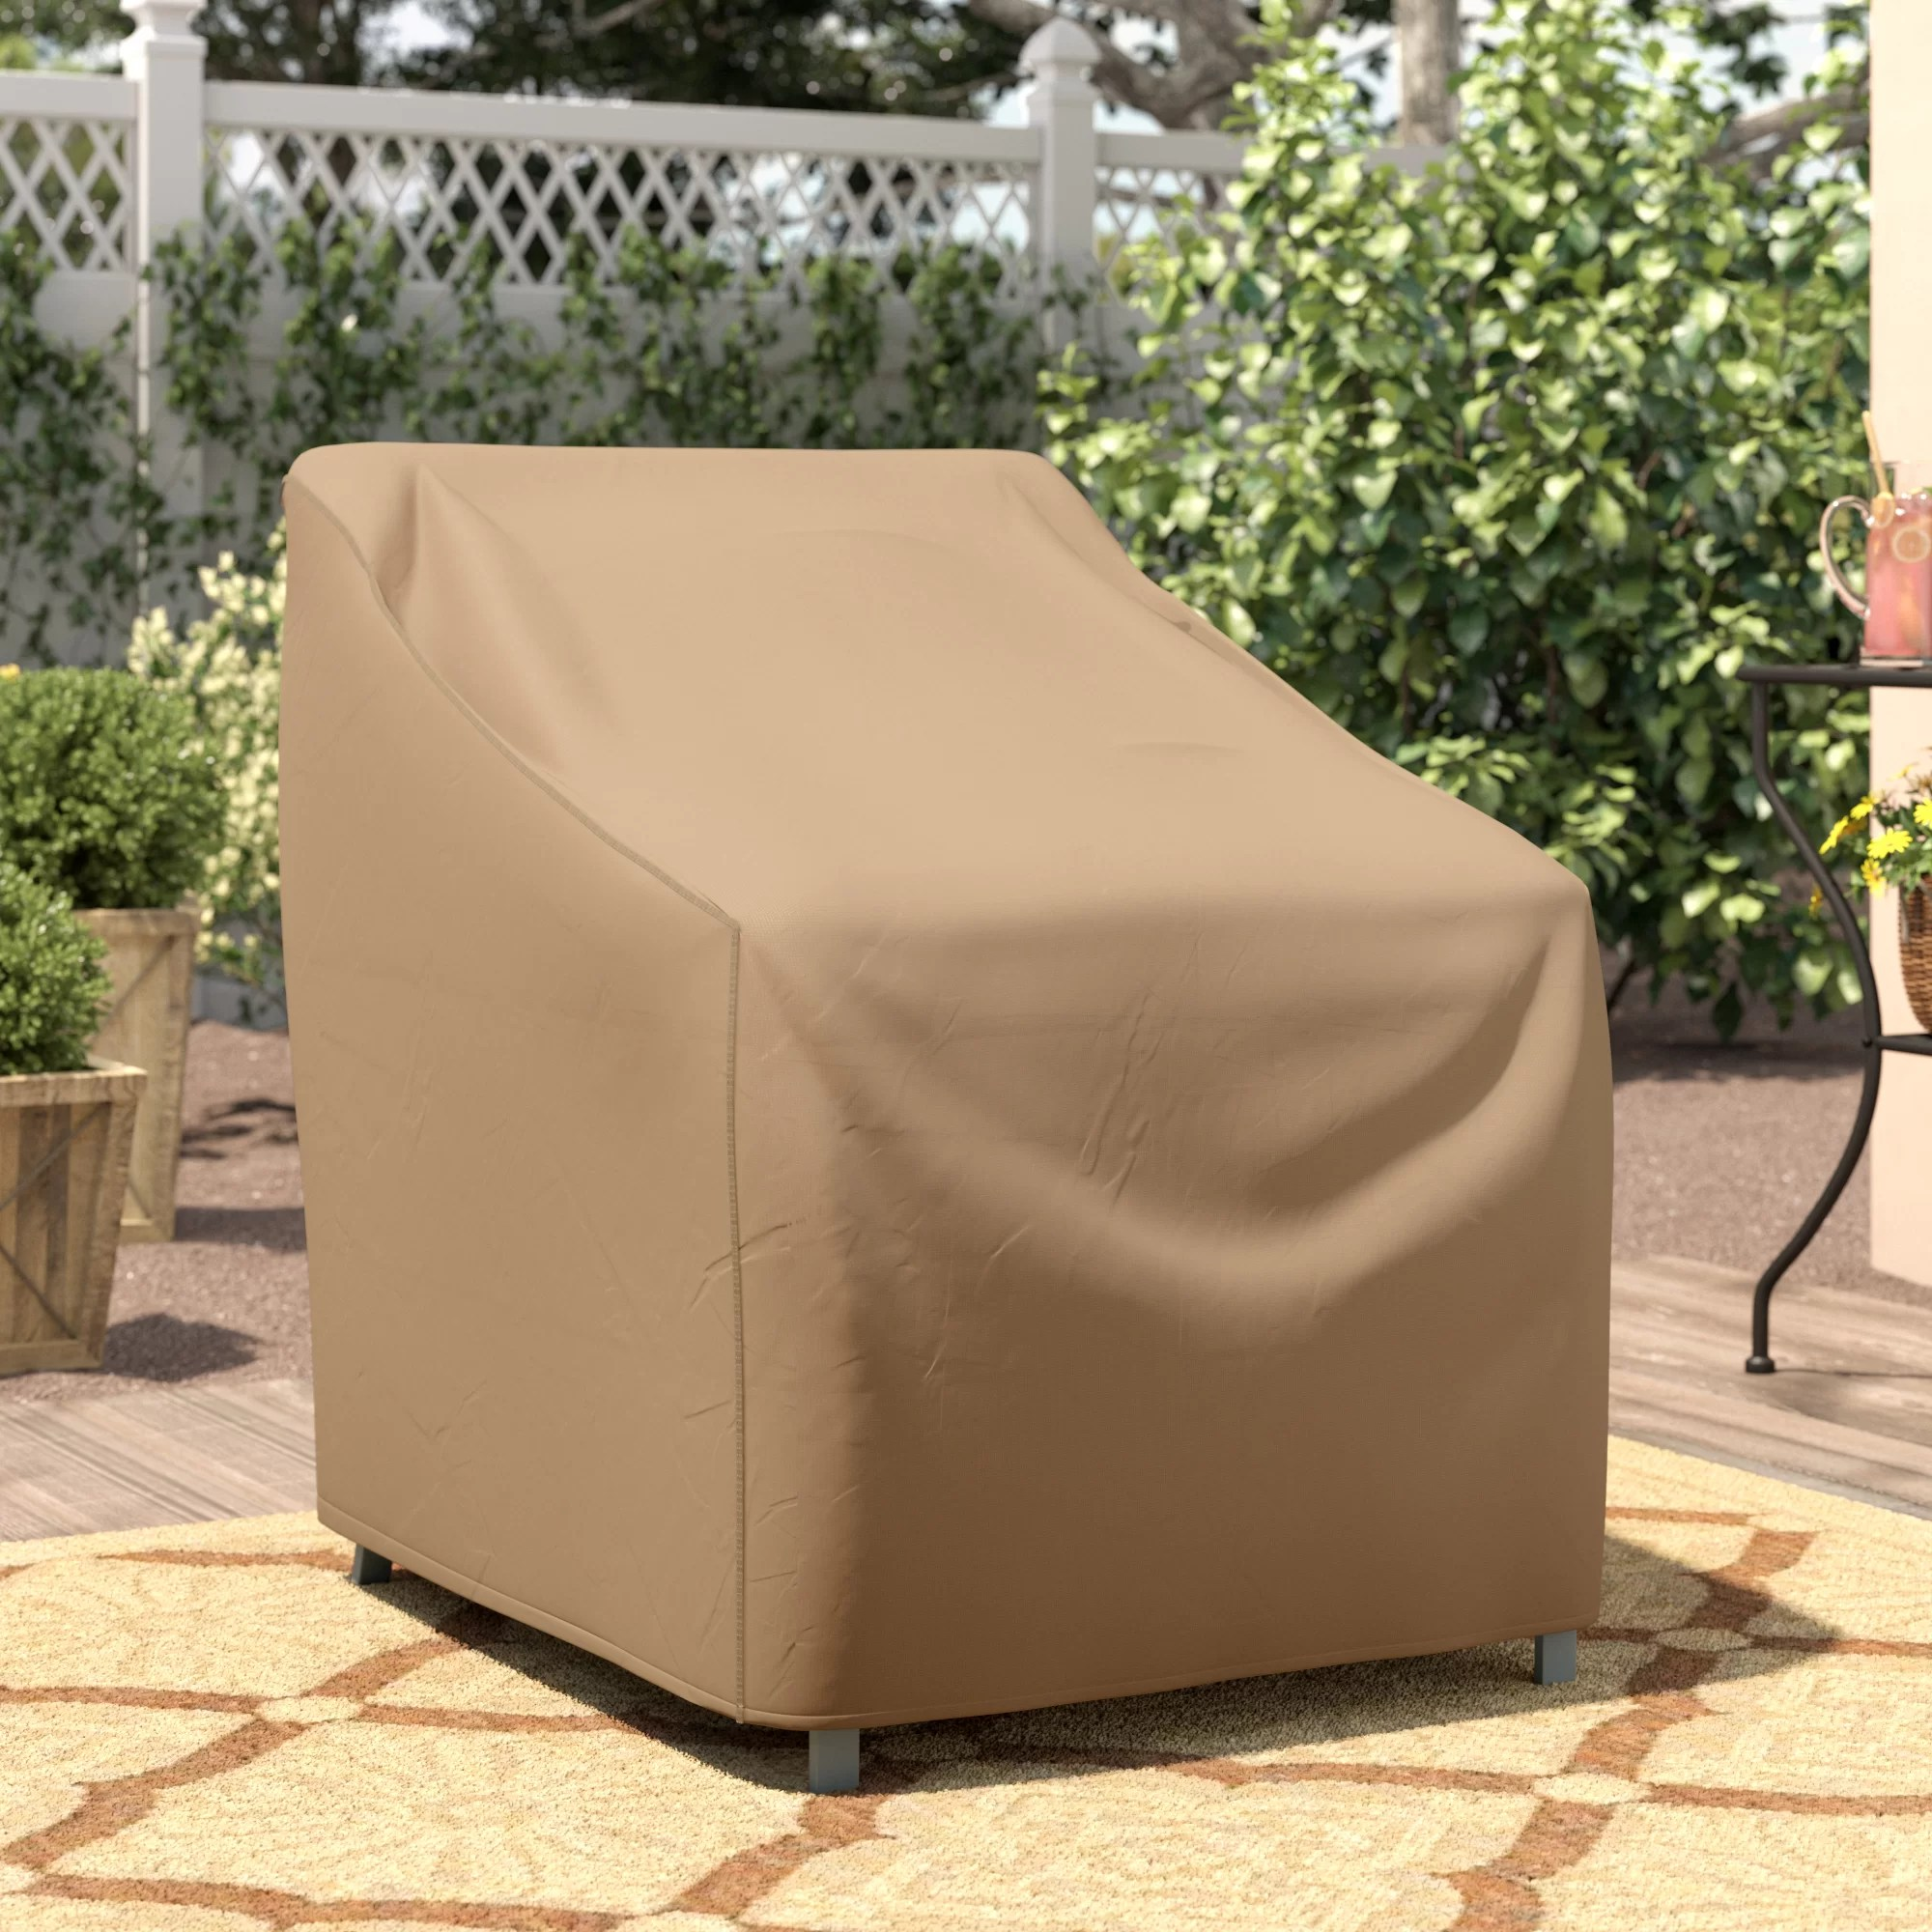 wayfair basics patio chair cover with tie fastener in36 h x 32 w x 37 d